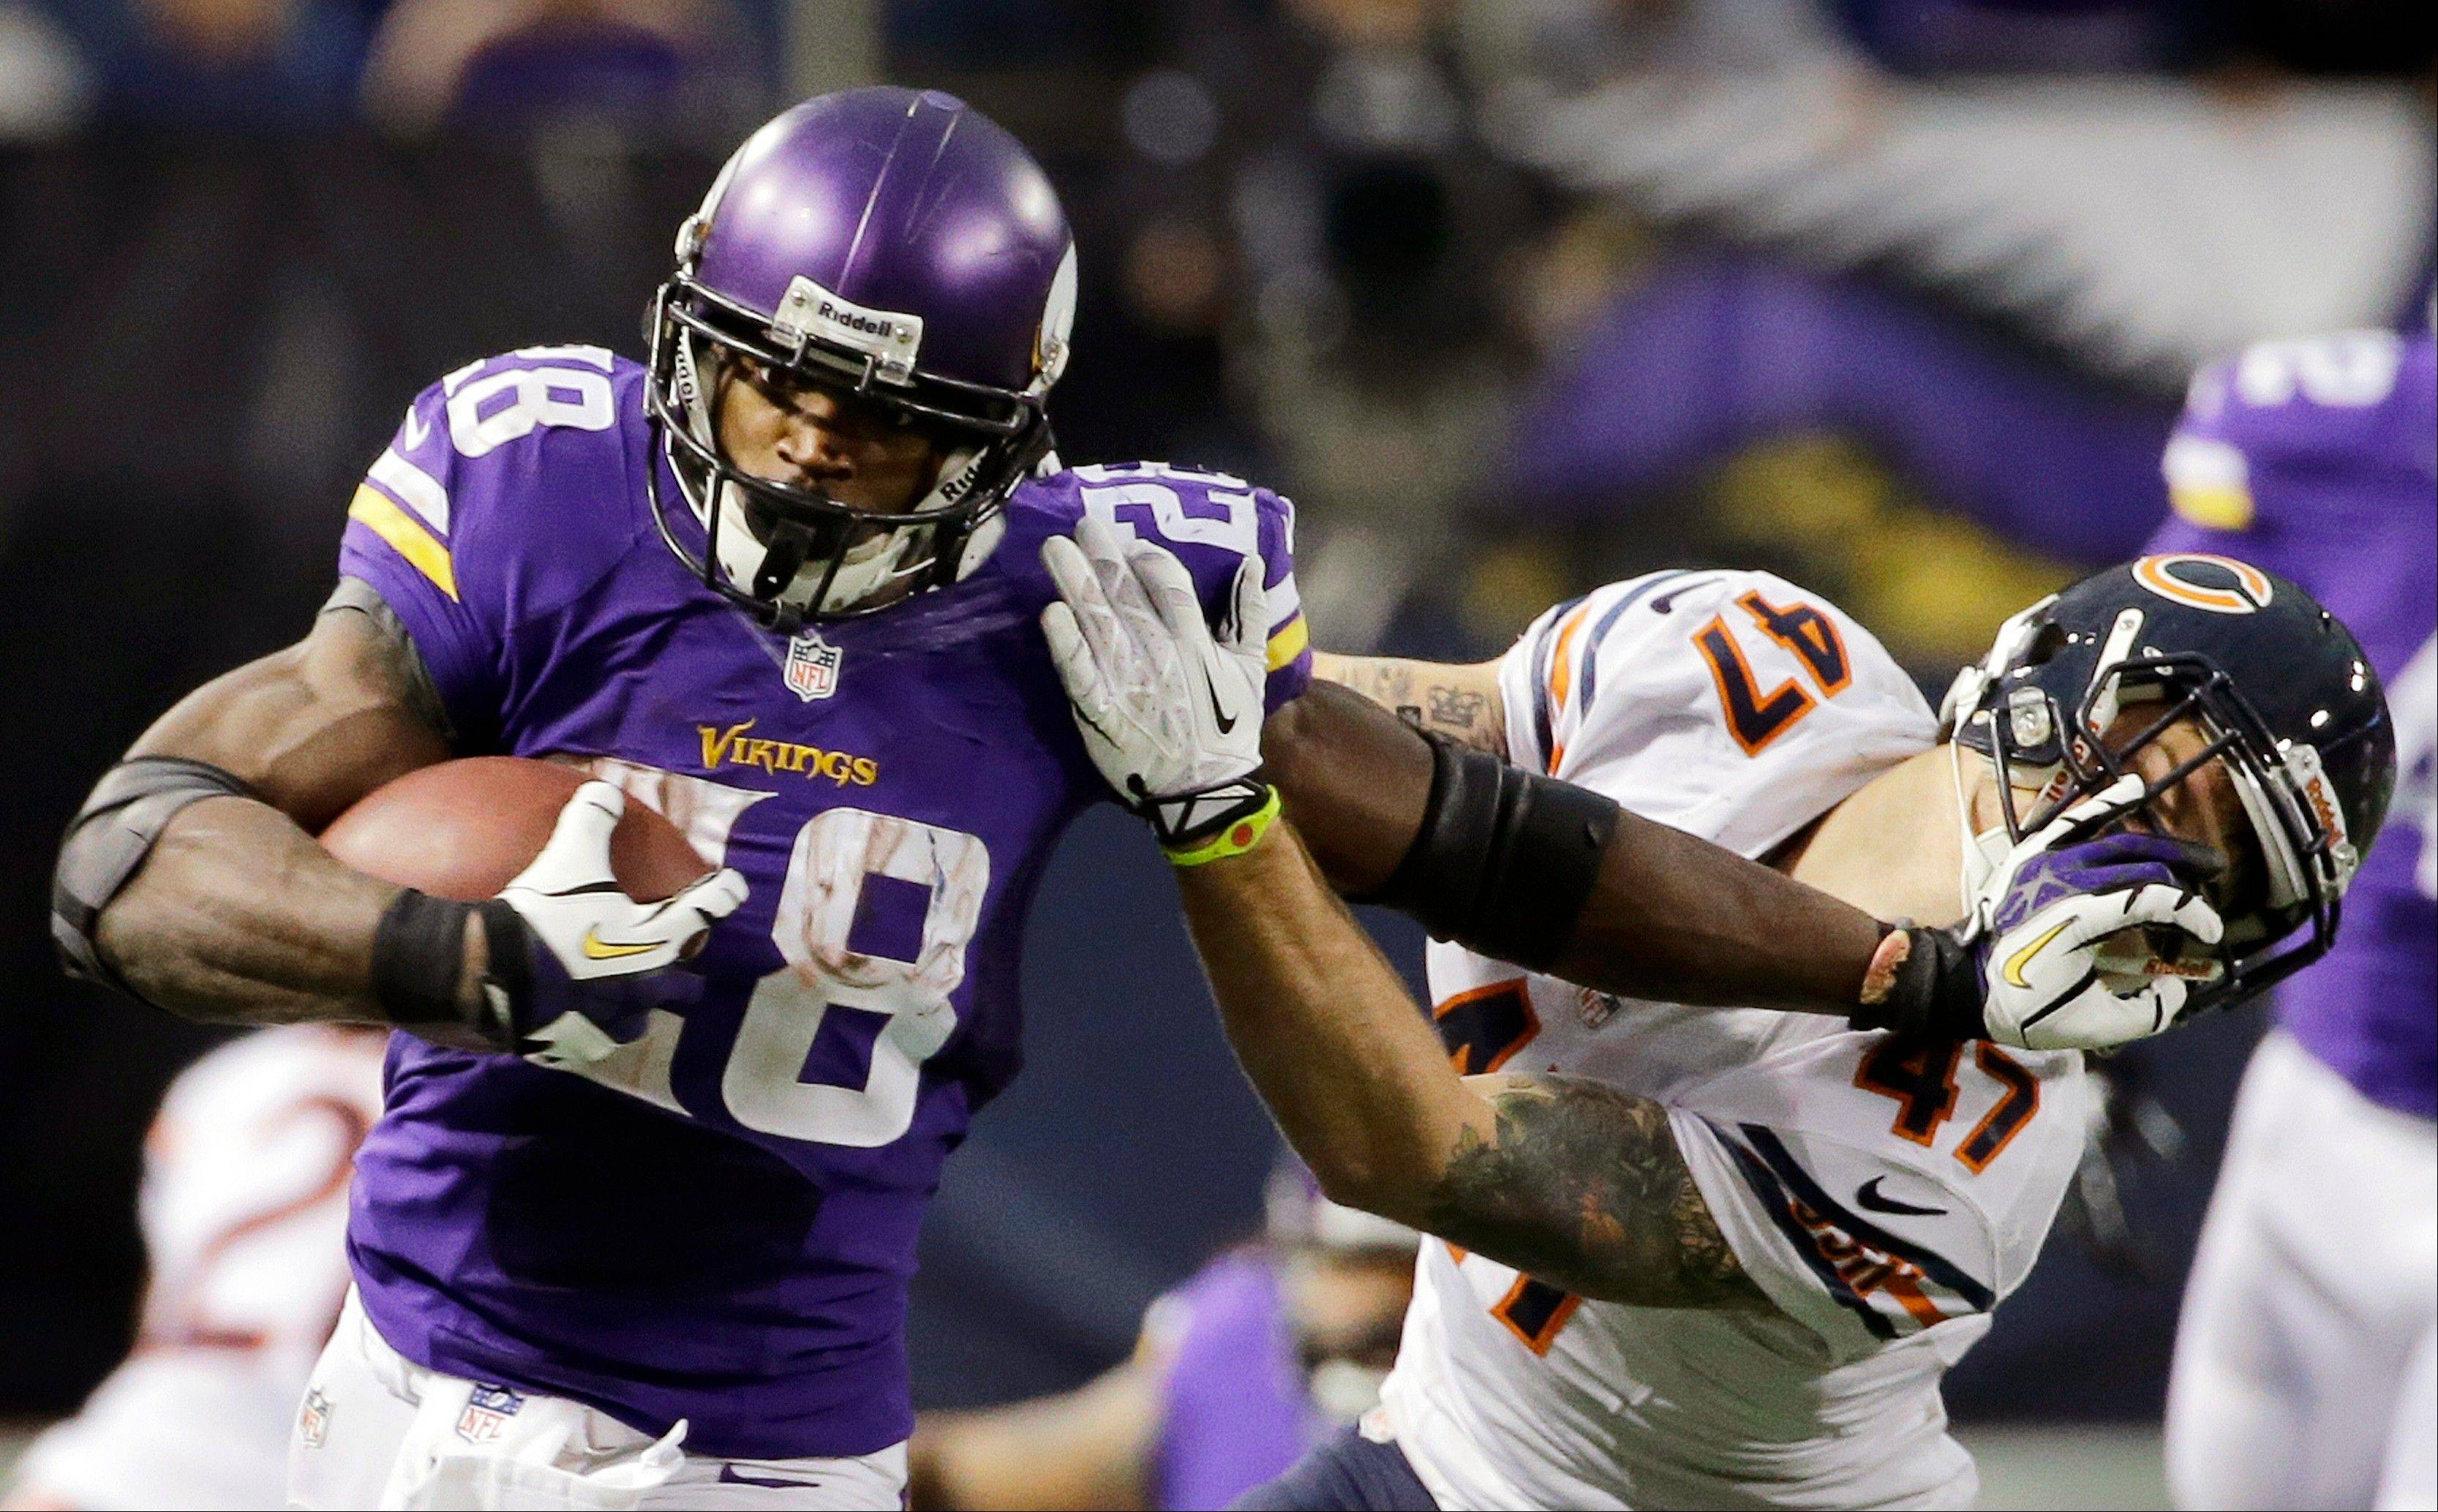 211 yards: Bears just can't stop Adrian Peterson